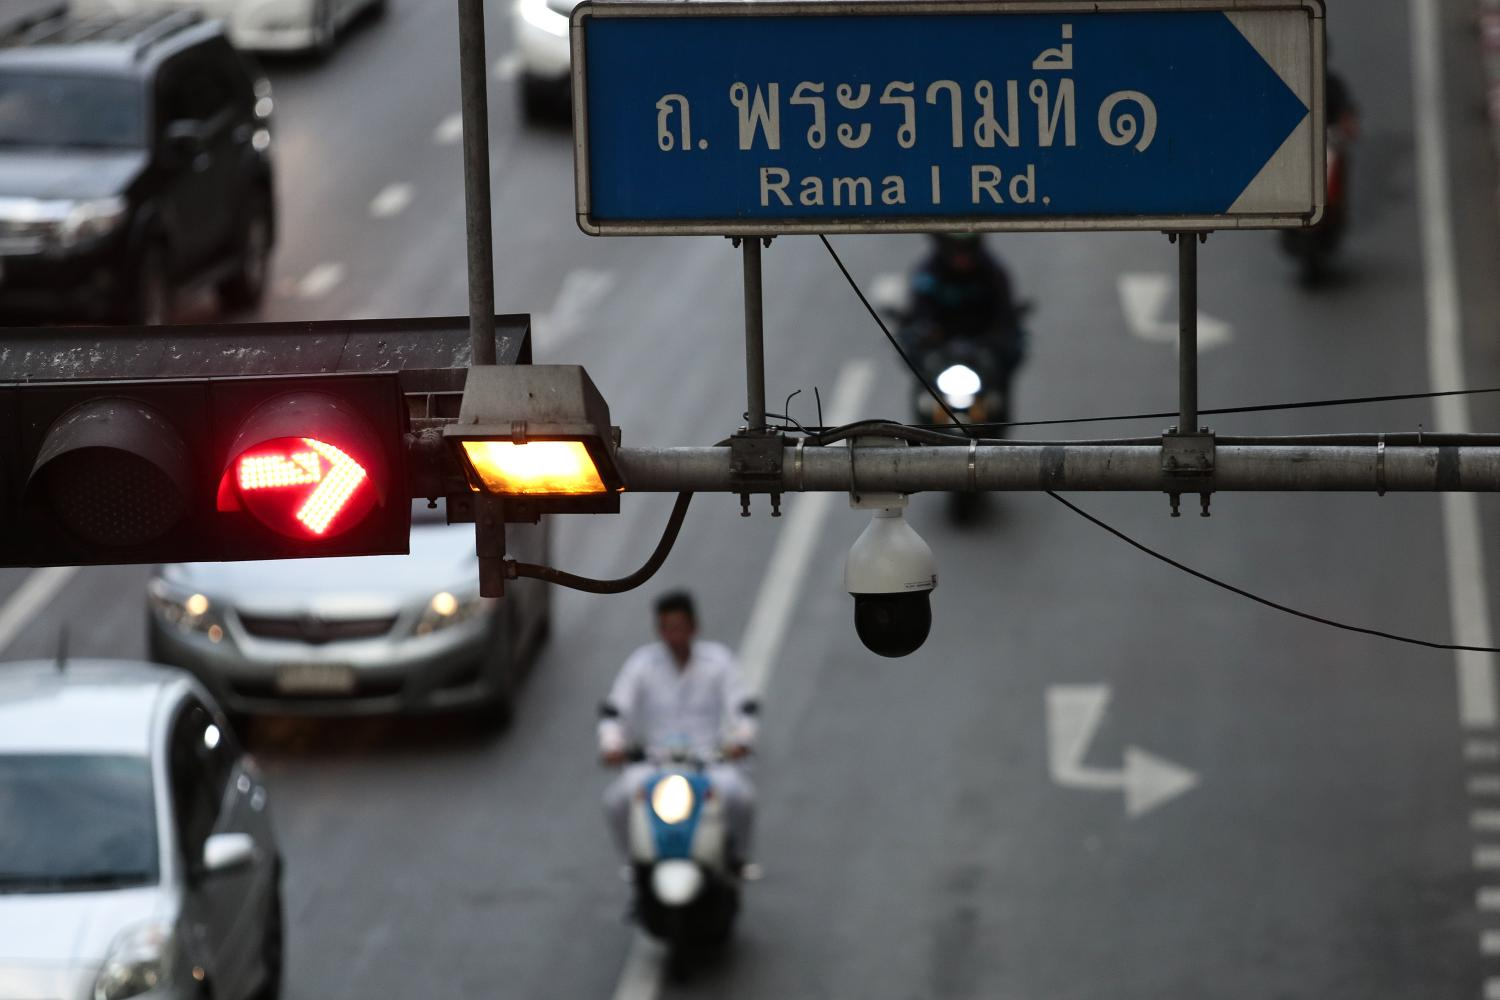 A CCTV camera is installed at the Ratchaprasong intersection, one of the city's busiest traffic junctions.